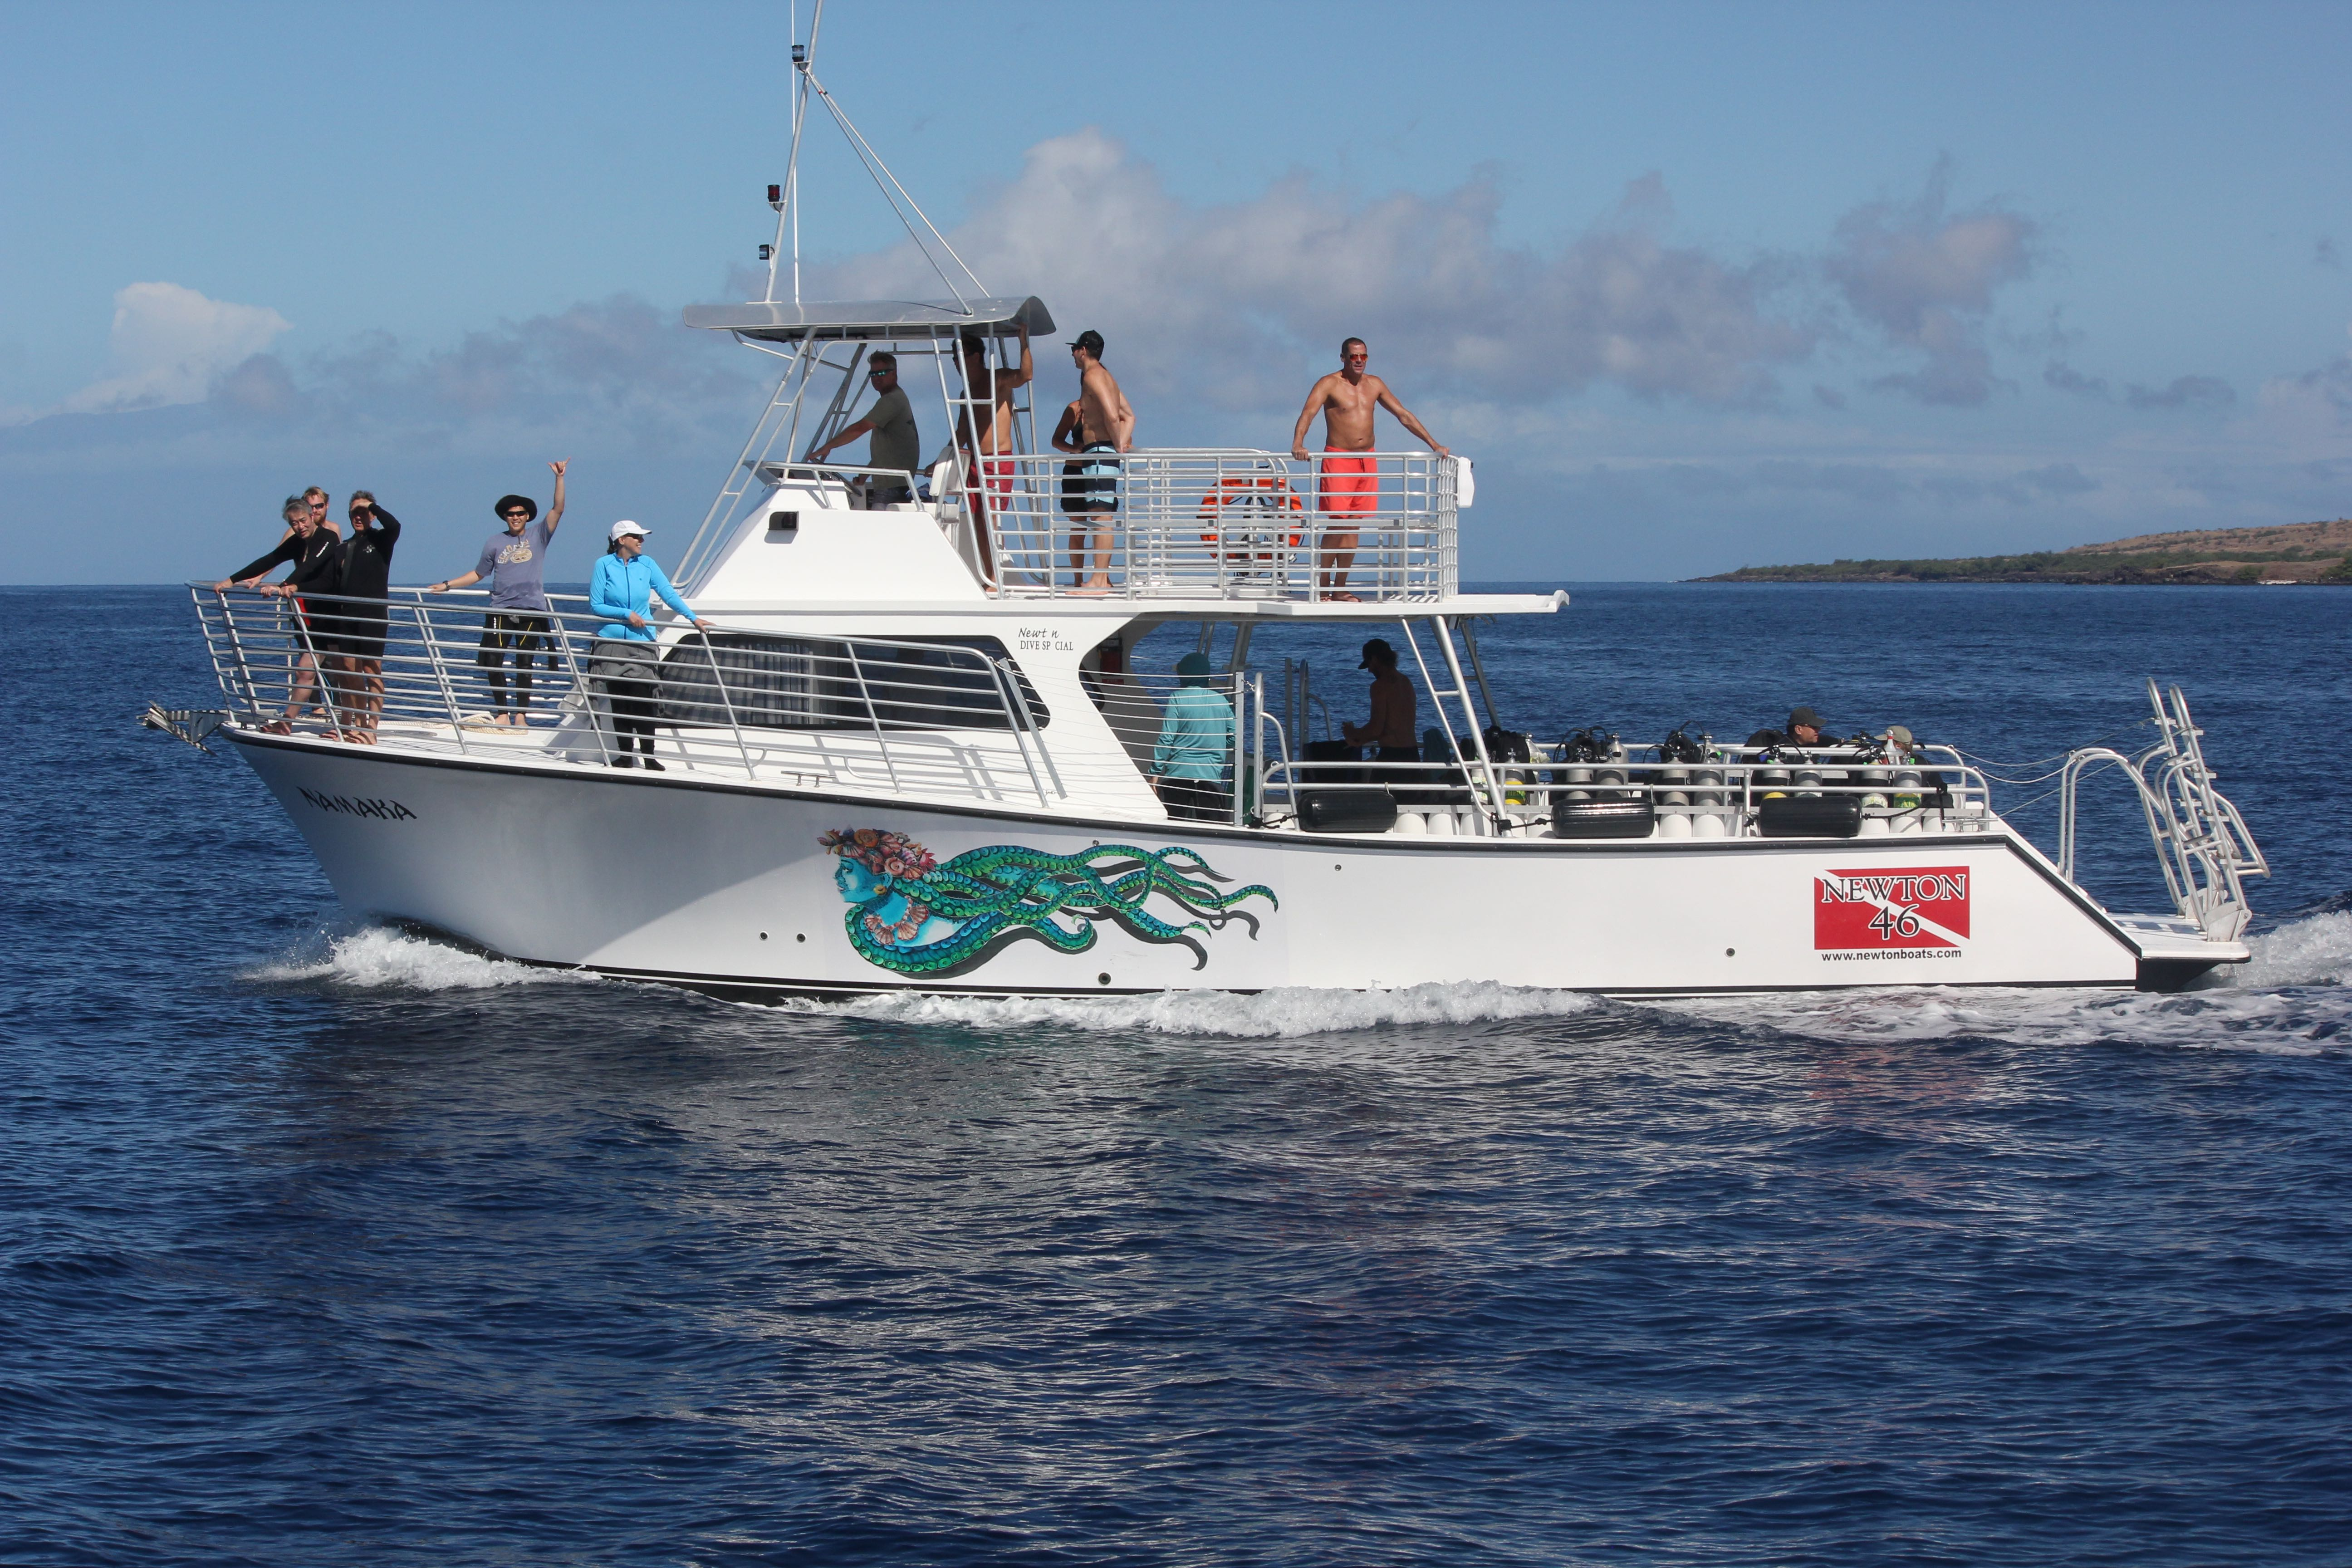 Half Day and Full Day Charters